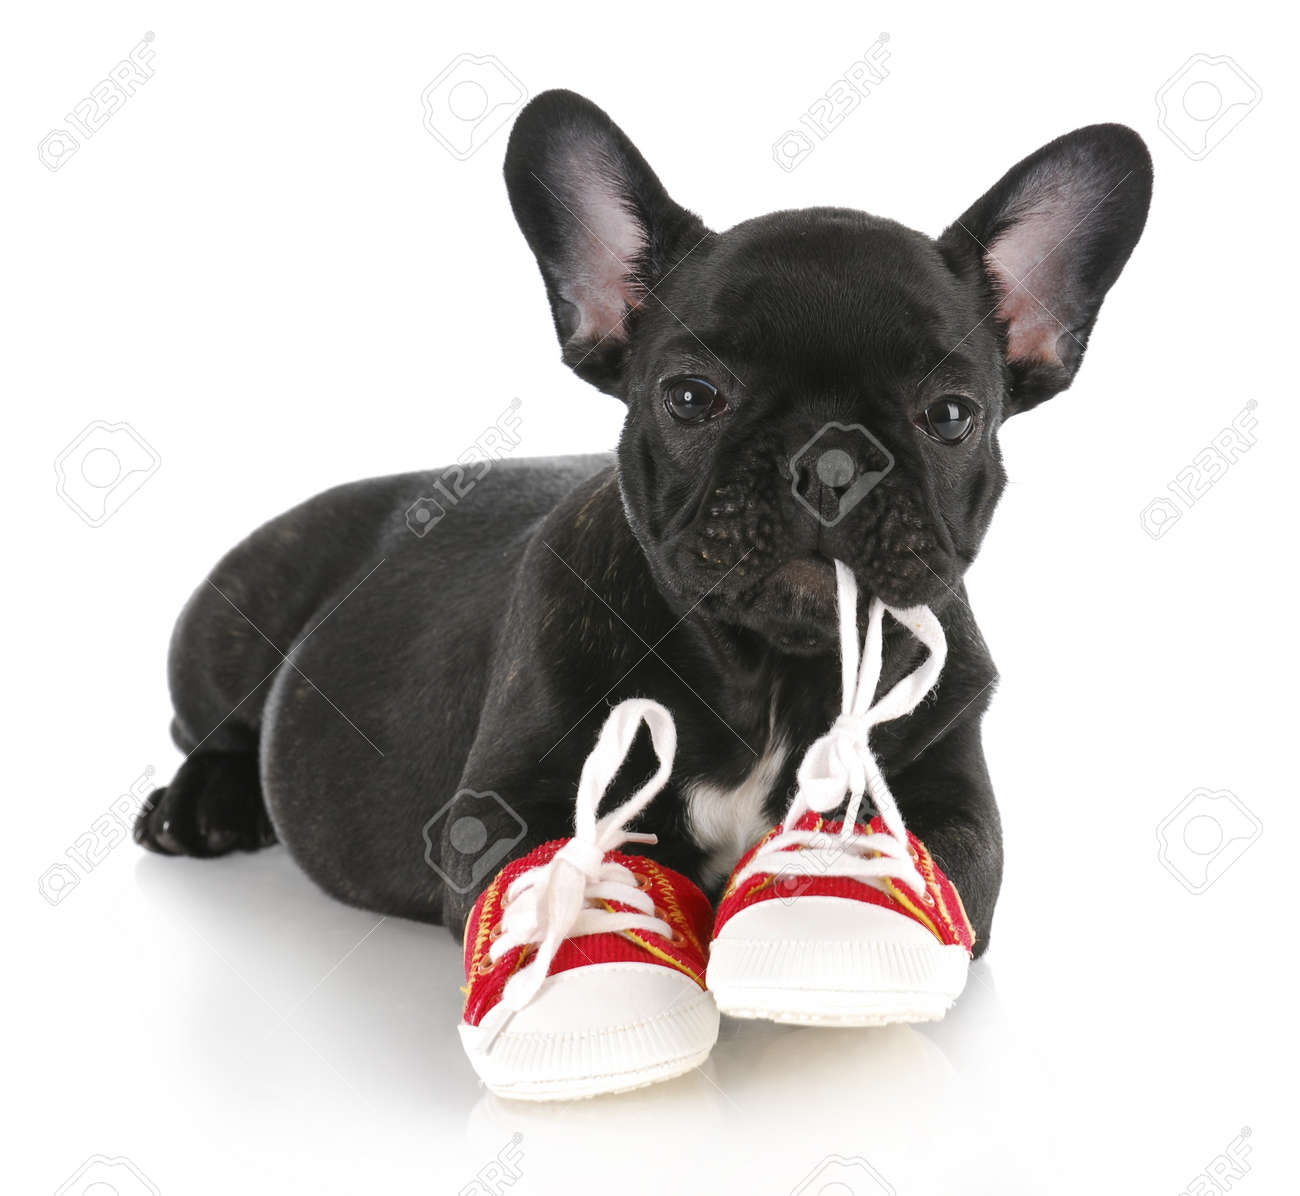 8ca5664a french bulldog puppy chewing on pair of red running shoes with reflection  on white background Stock